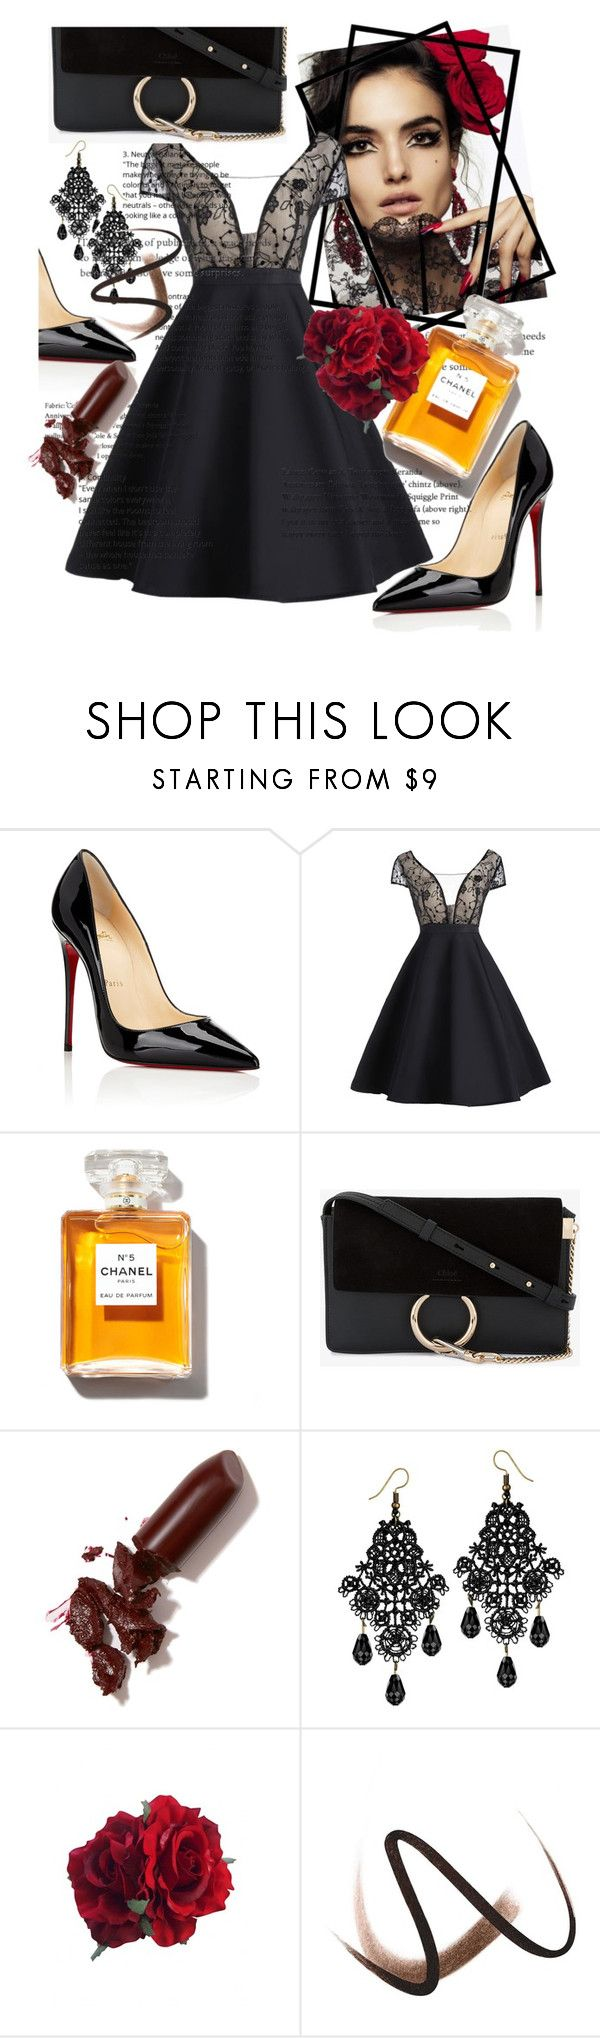 """femme falete"" by phoebewry ❤ liked on Polyvore featuring Blanca, Christian Louboutin, Chloé, LAQA & Co. and Burberry"